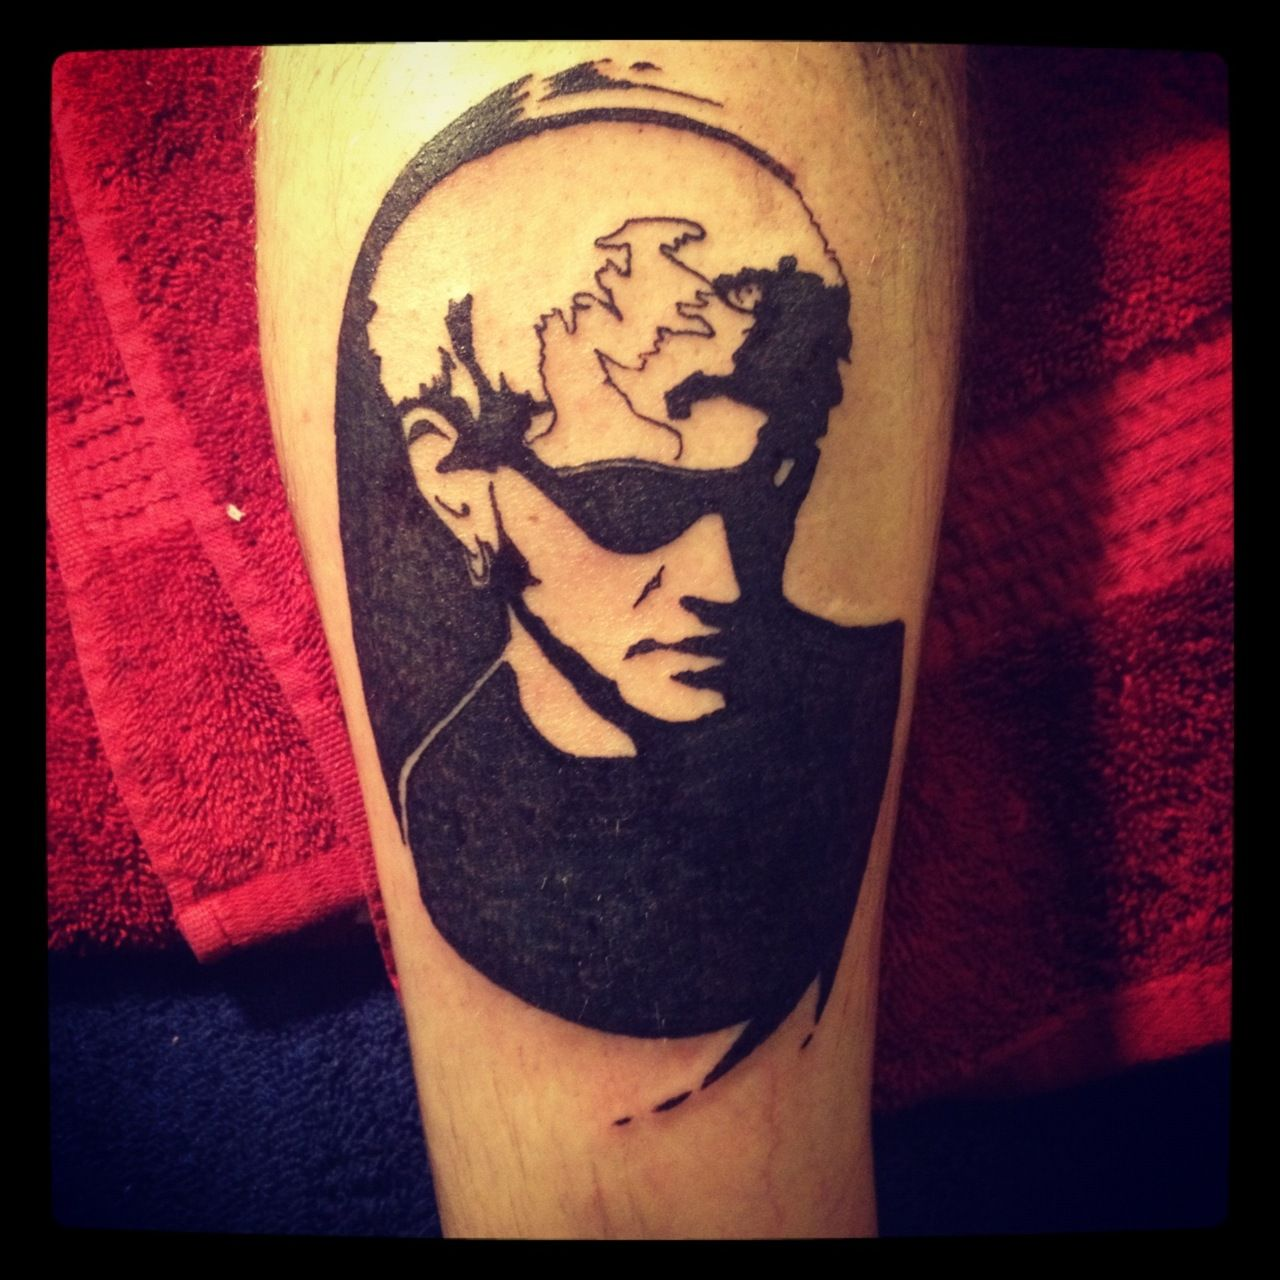 Tattoosbydanseymour Layne Staley Of Alice In Chains Ideas And Designs